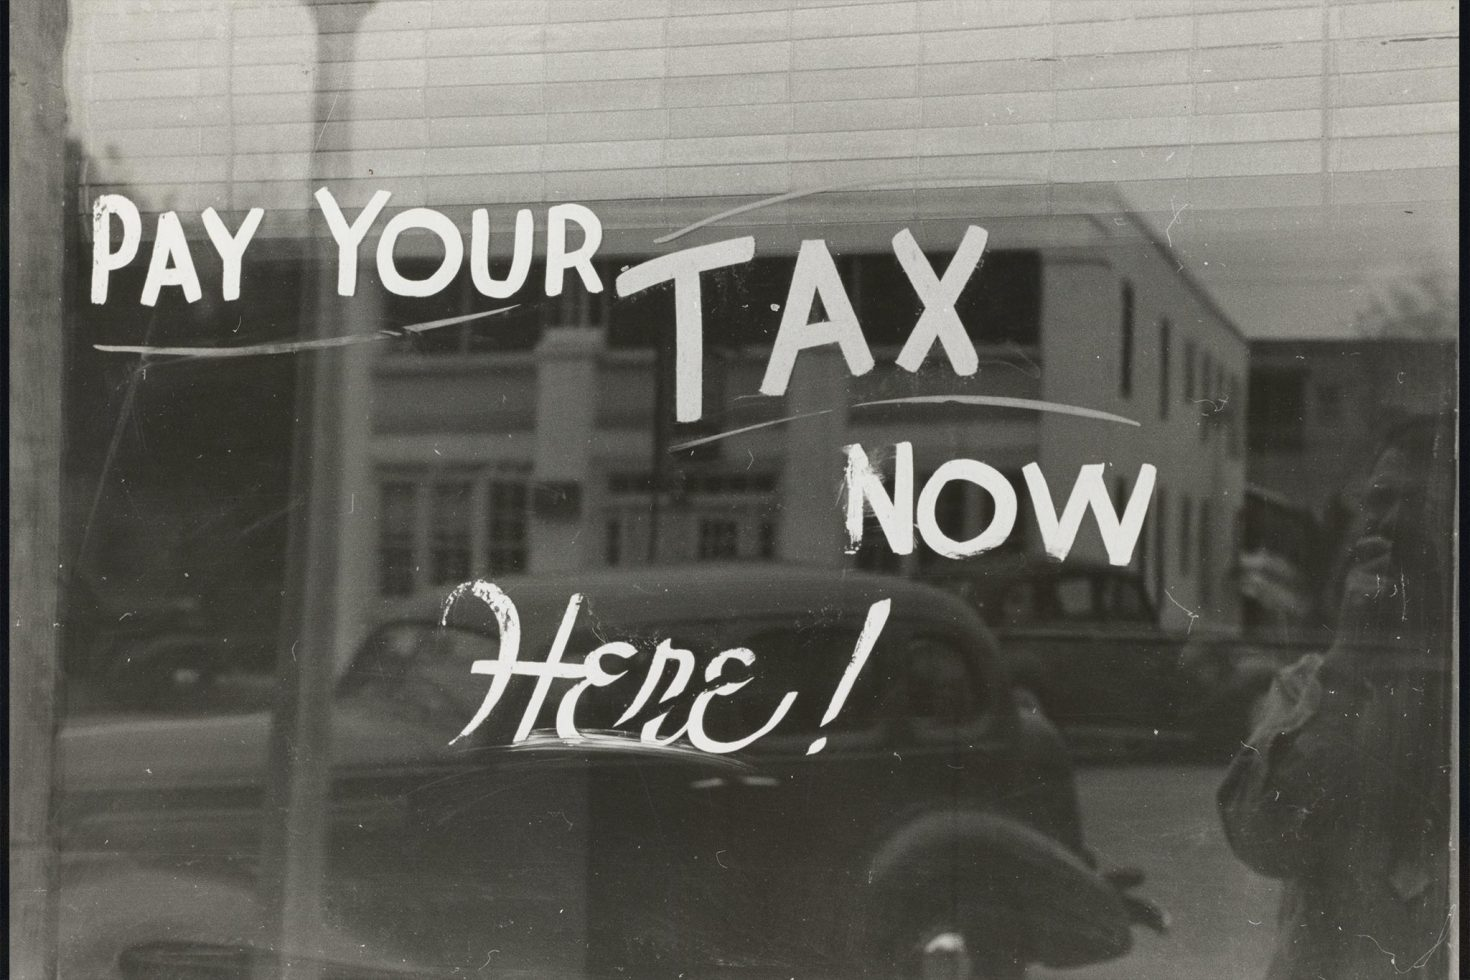 Vintage Image of a shop window with 'Pay your tax now Here!' painted on it.